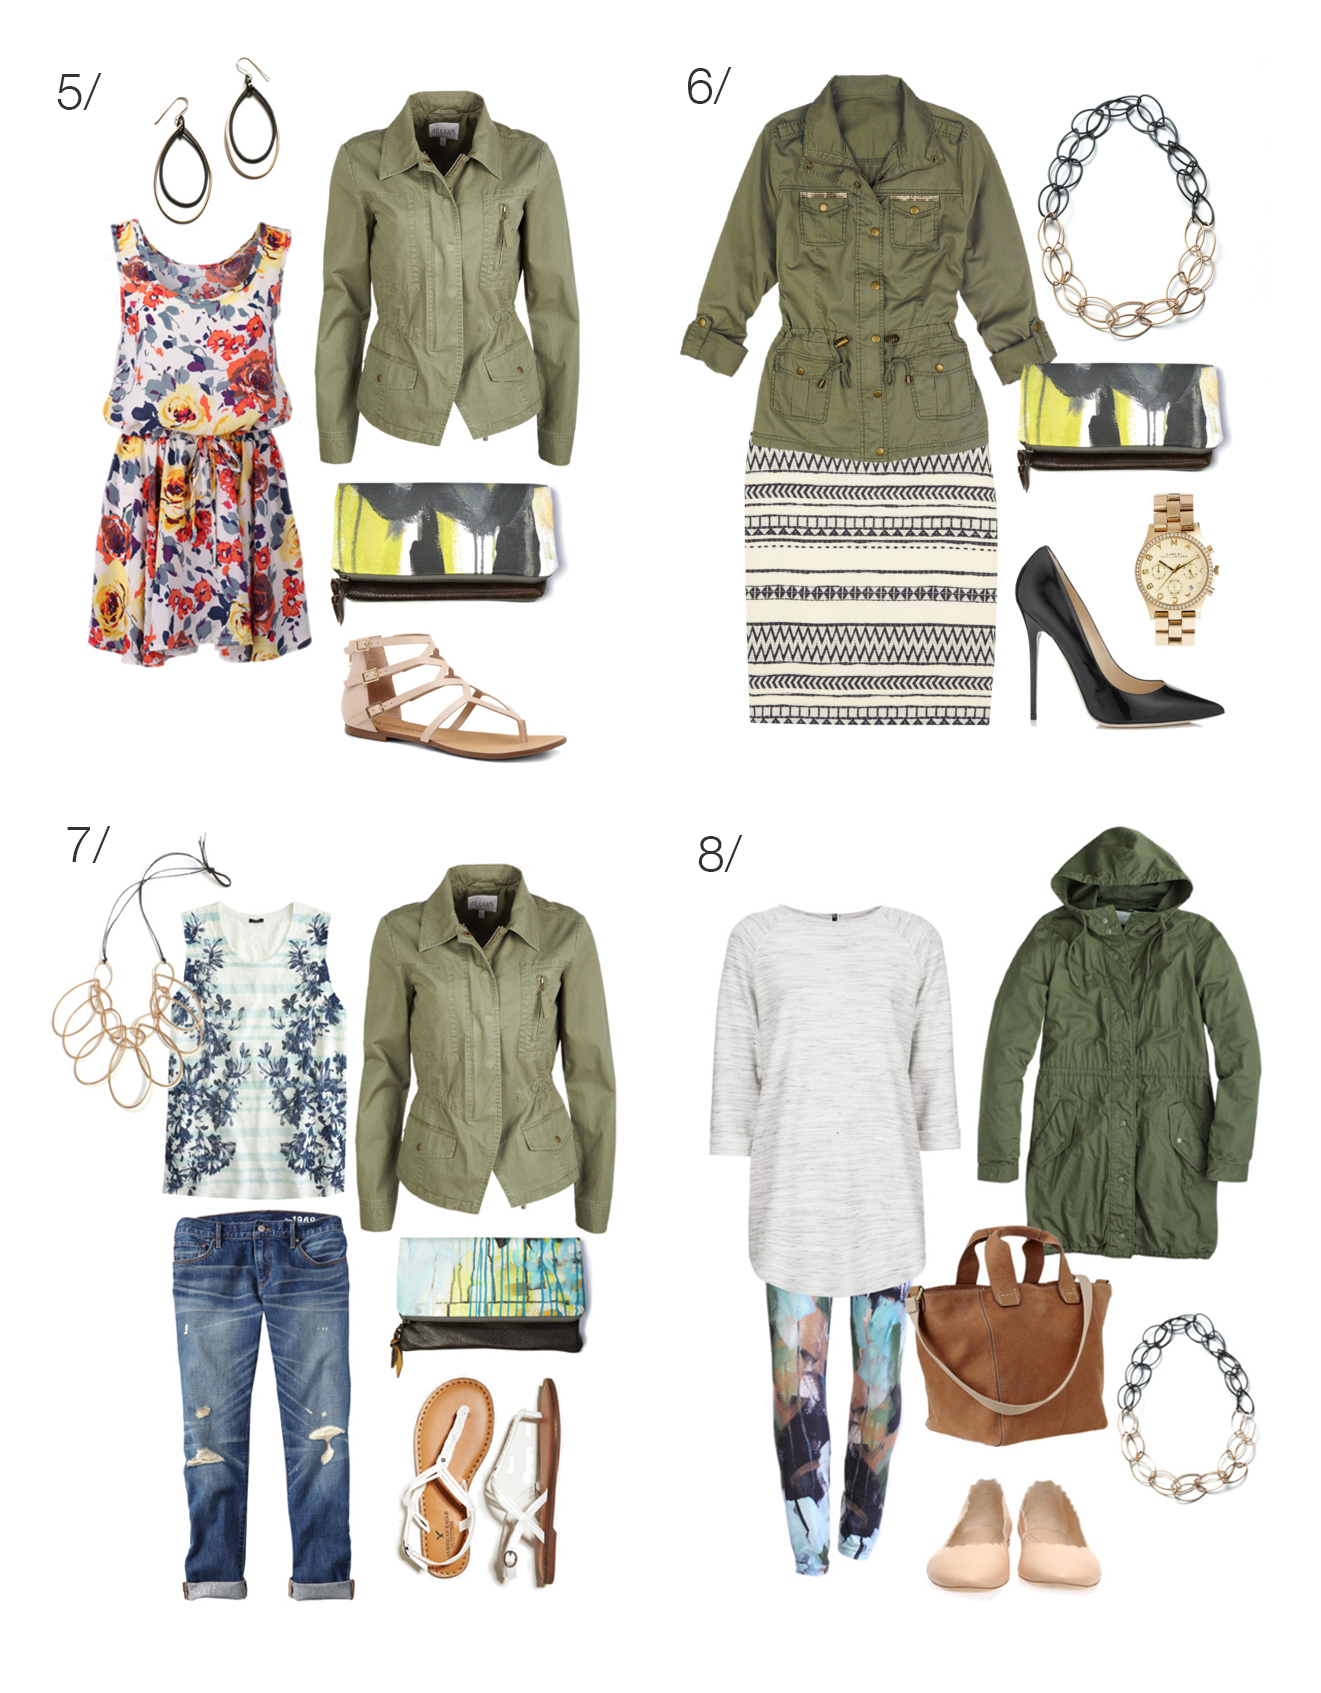 8 ways to wear a military jacket via megan auman